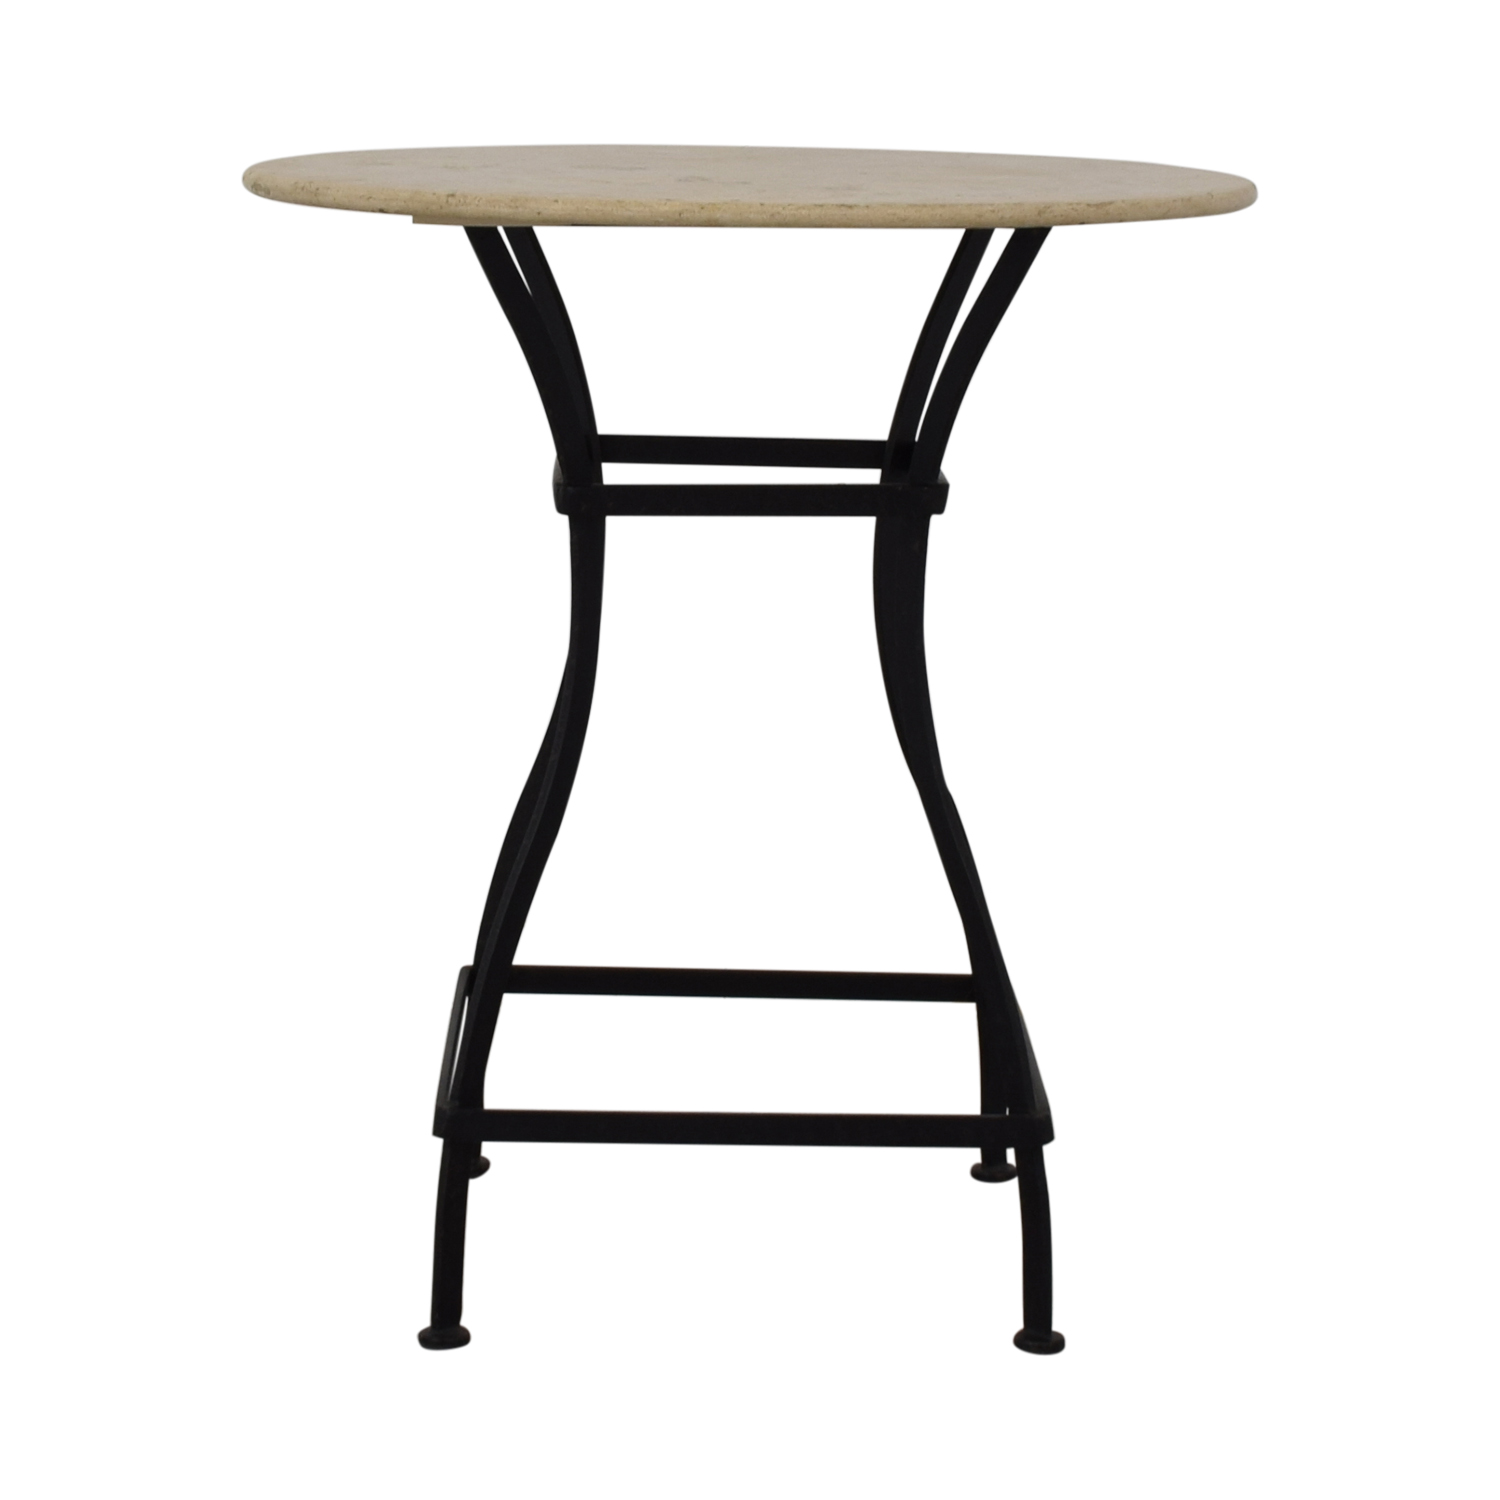 buy Crate & Barrel Bistro Table Crate & Barrel